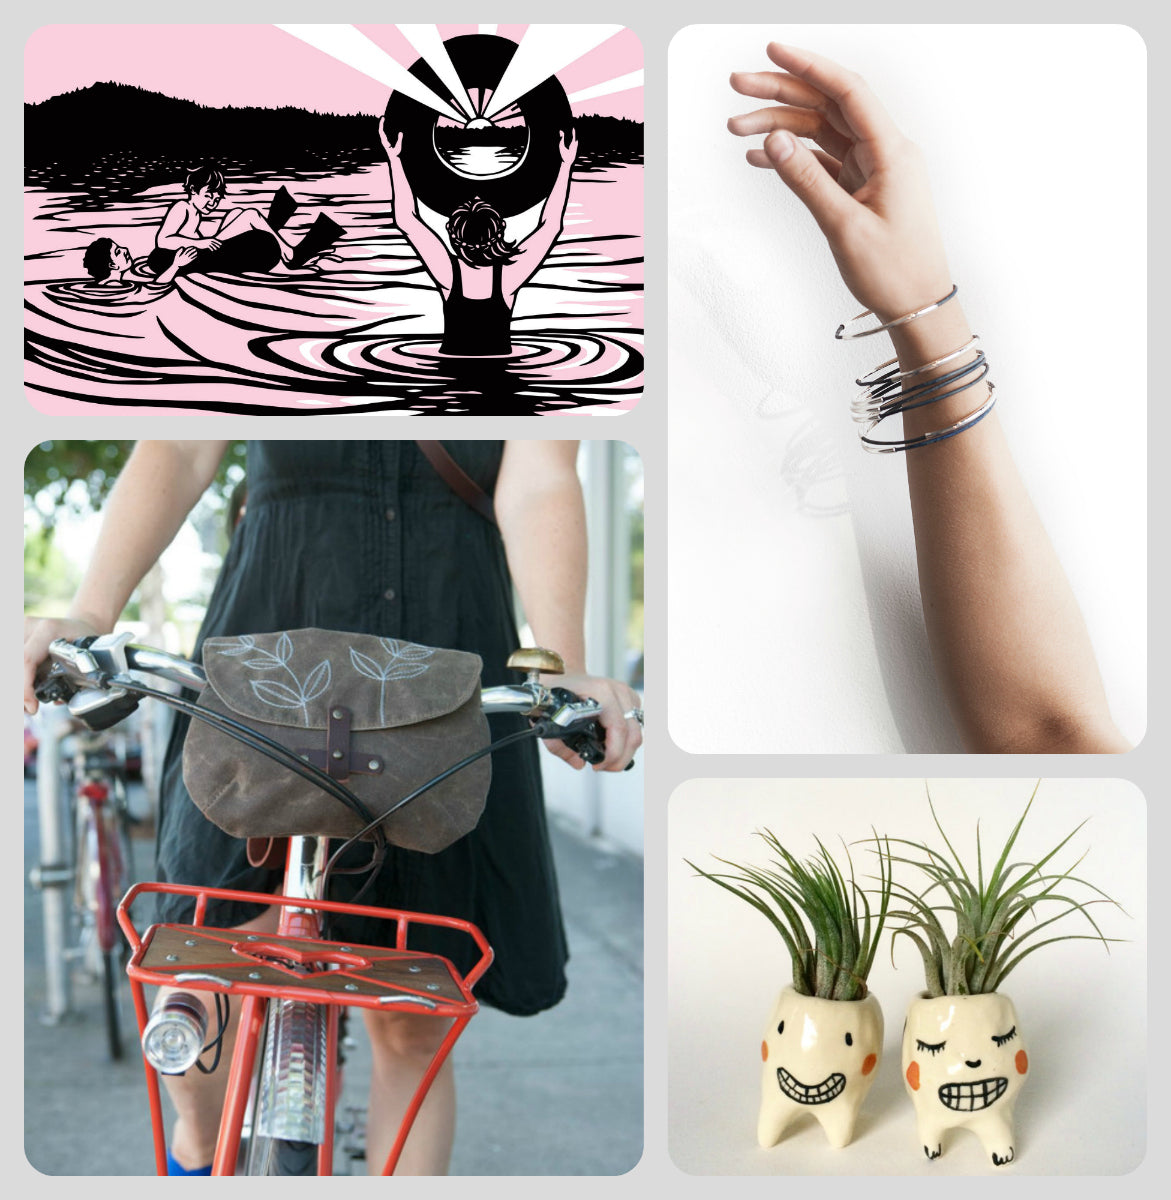 rebeccas gift guide nikki mcclure calendar moo young bangles bang bang ceramics handlebar bag waxed canvas bike